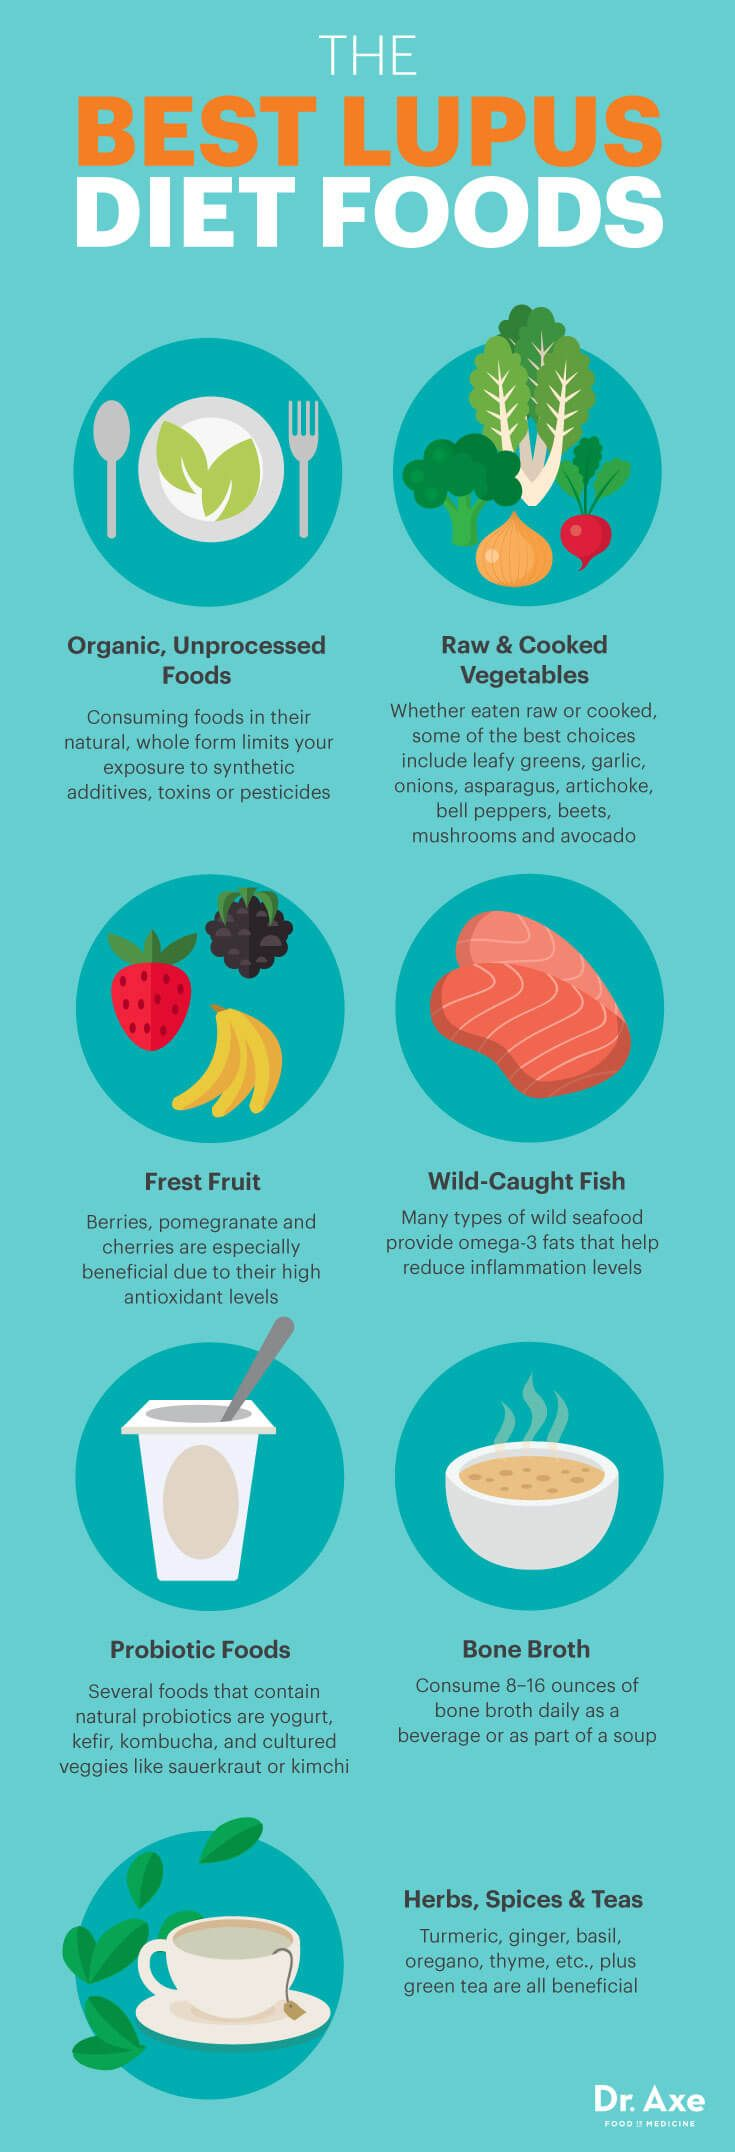 The best lupus diet foods - Dr. Axe  http://www.draxe.com #health #holistic #natural